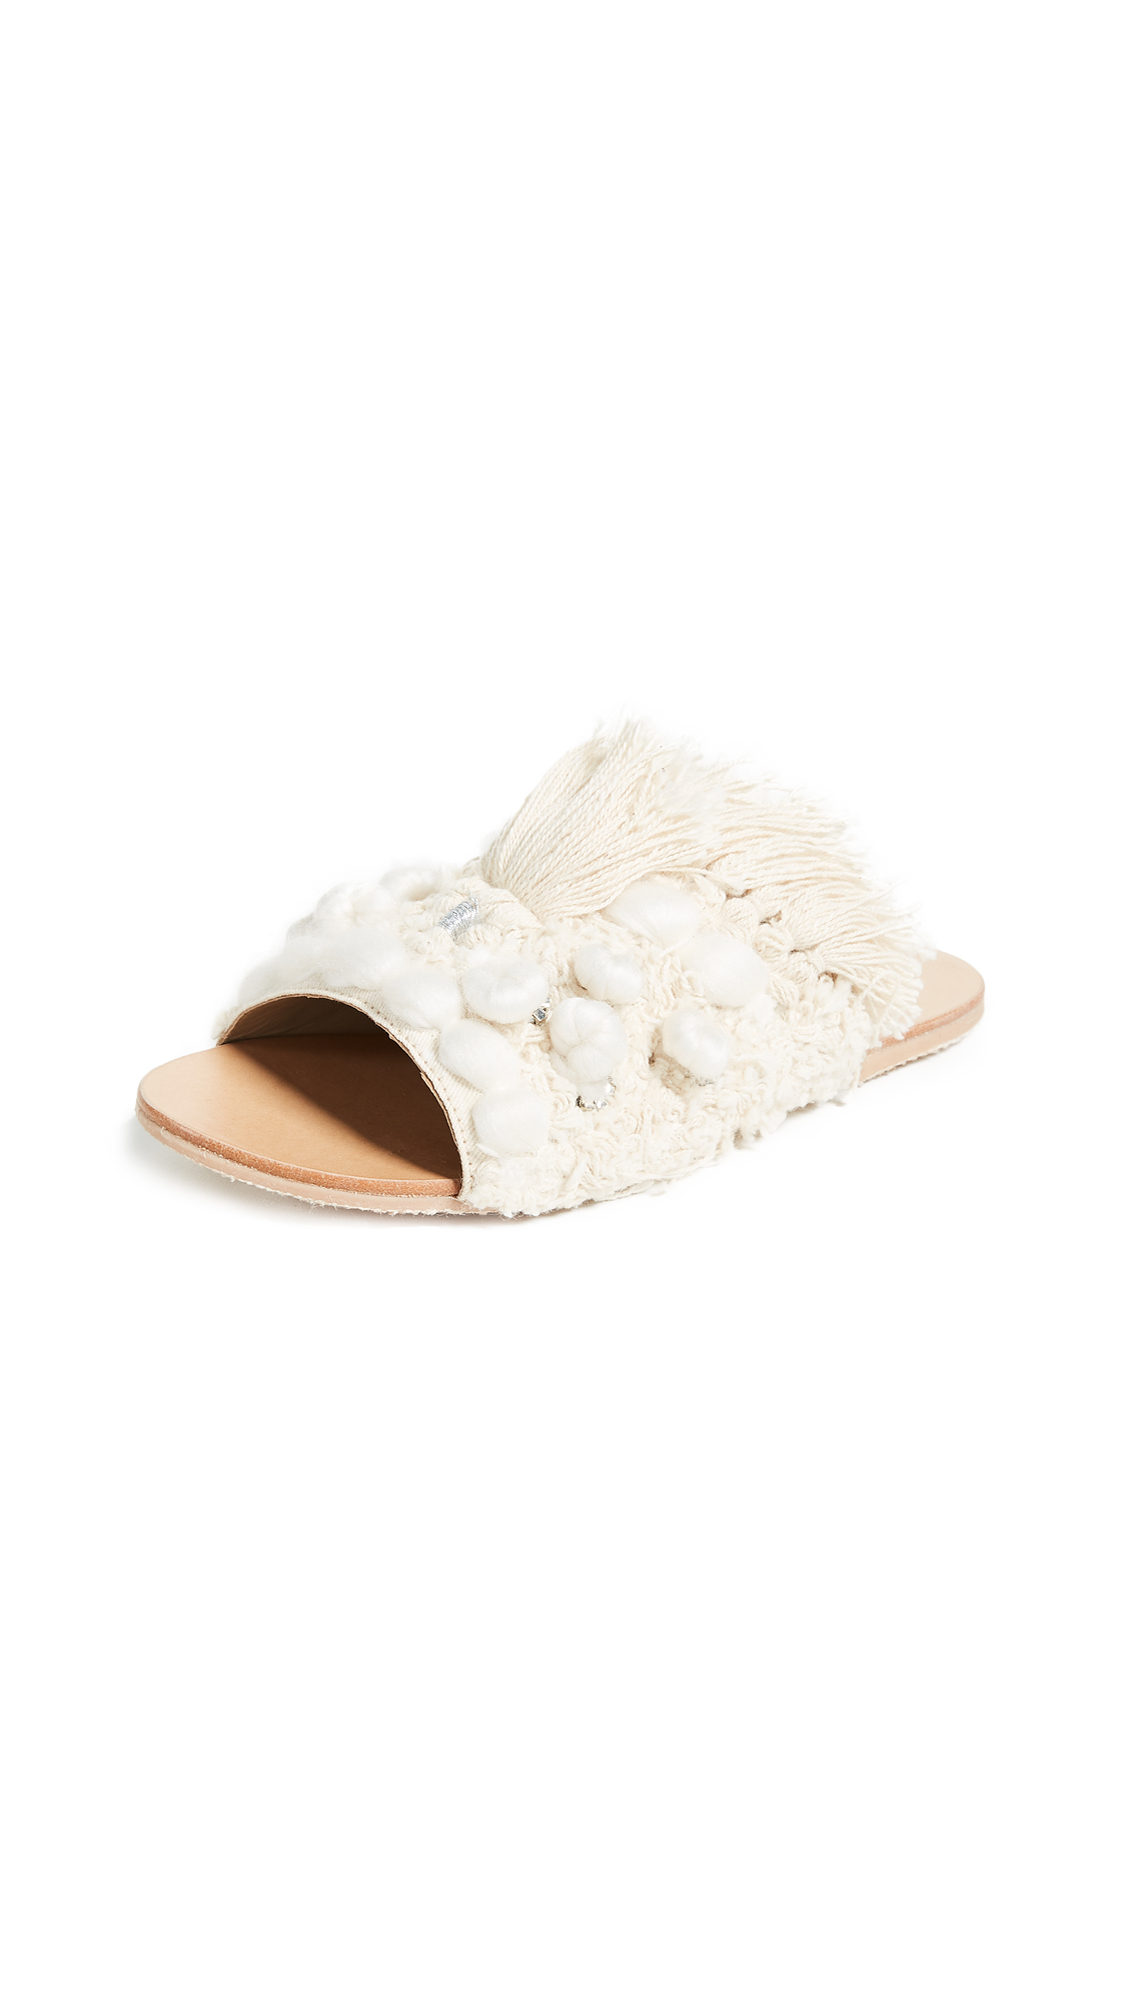 Free People Mars at Night Slides - Cream